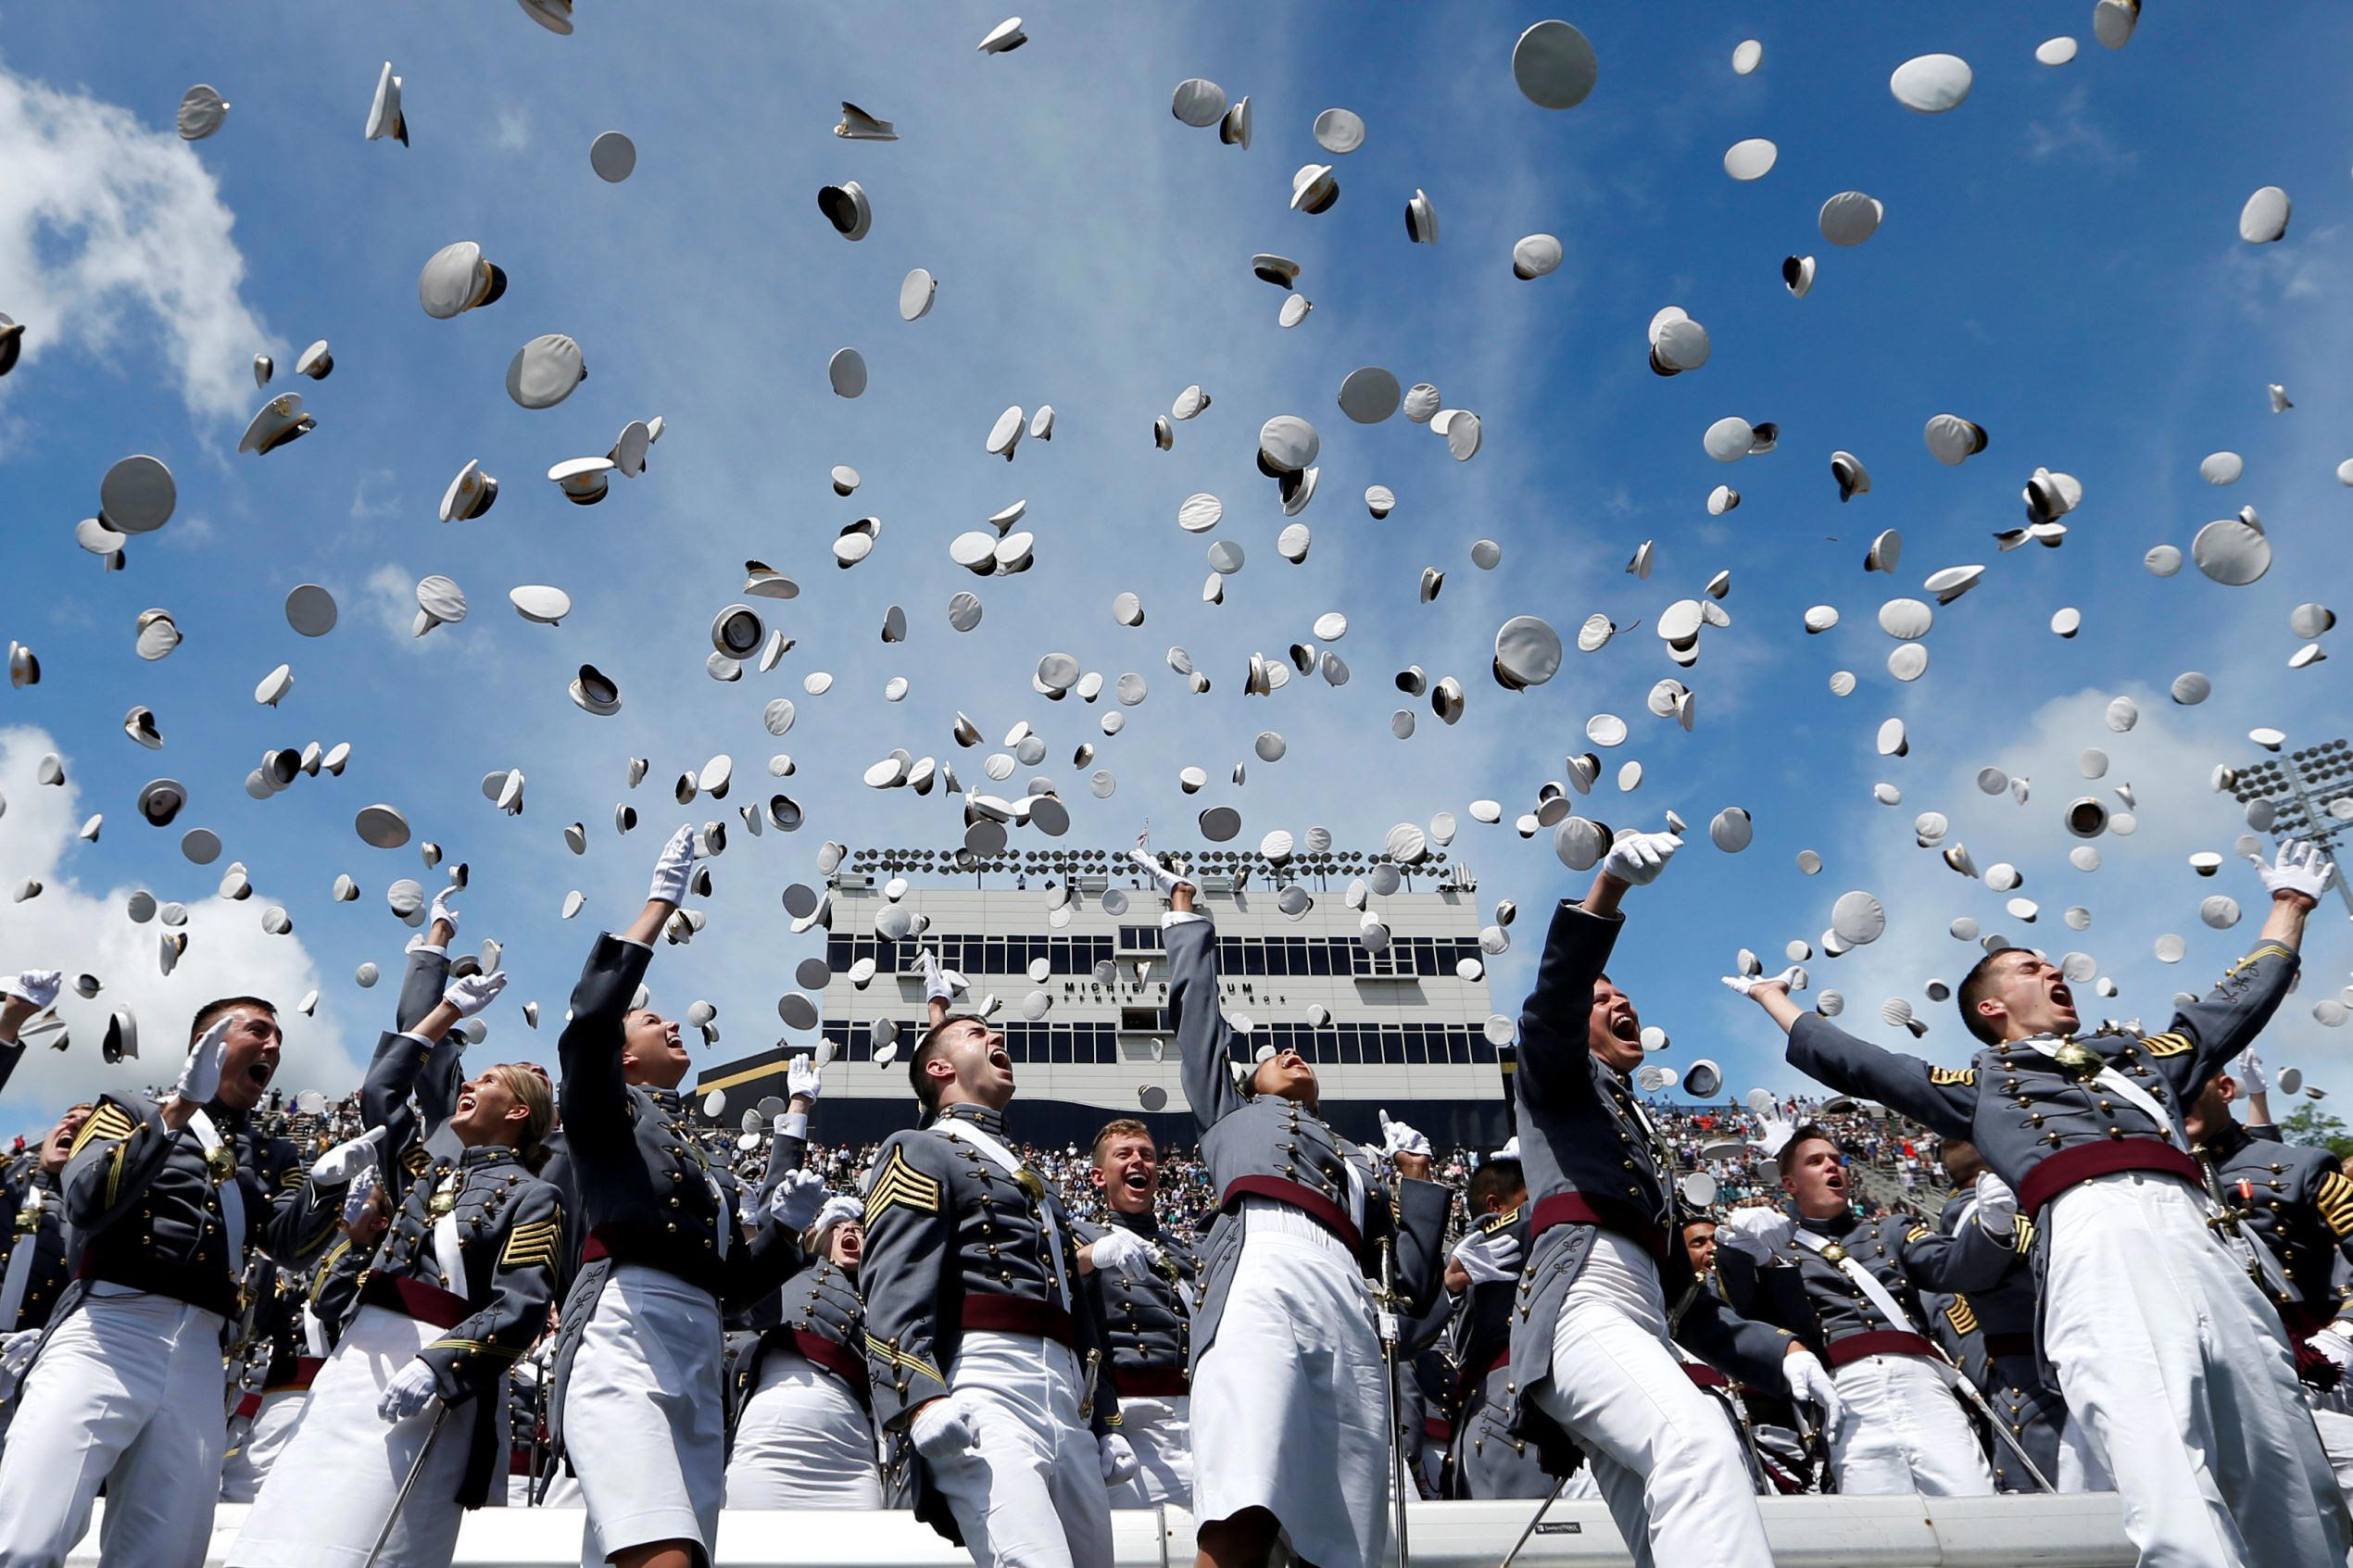 Slide 1 of 100: Graduates of the United States Military Academy toss their hats into the air at the conclusion of commencement ceremonies in West Point, New York, U.S., May 27, 2017.